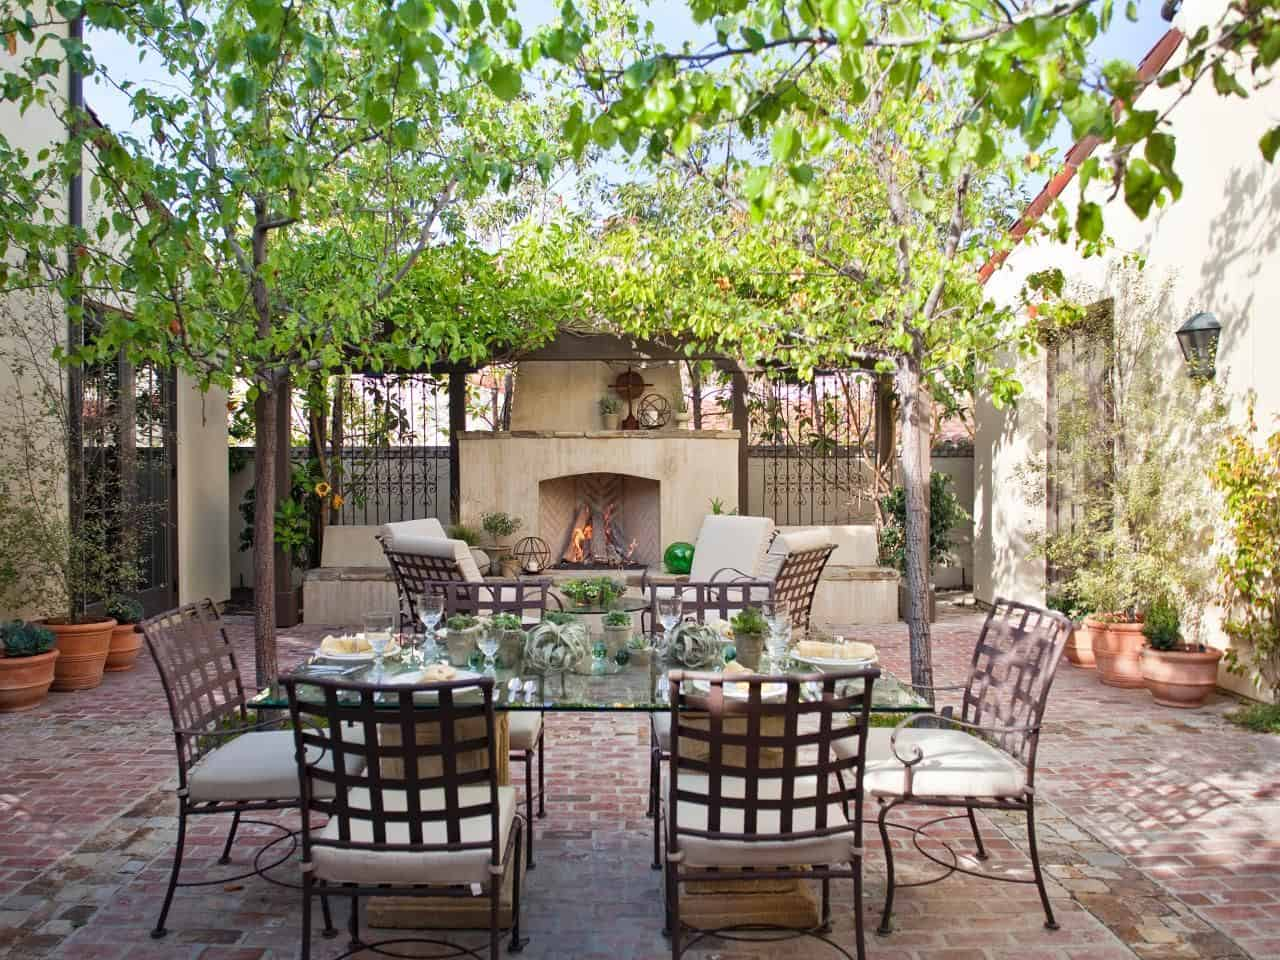 Mediterranean Touch Chic And Charming Outdoor Eating Space Ideas